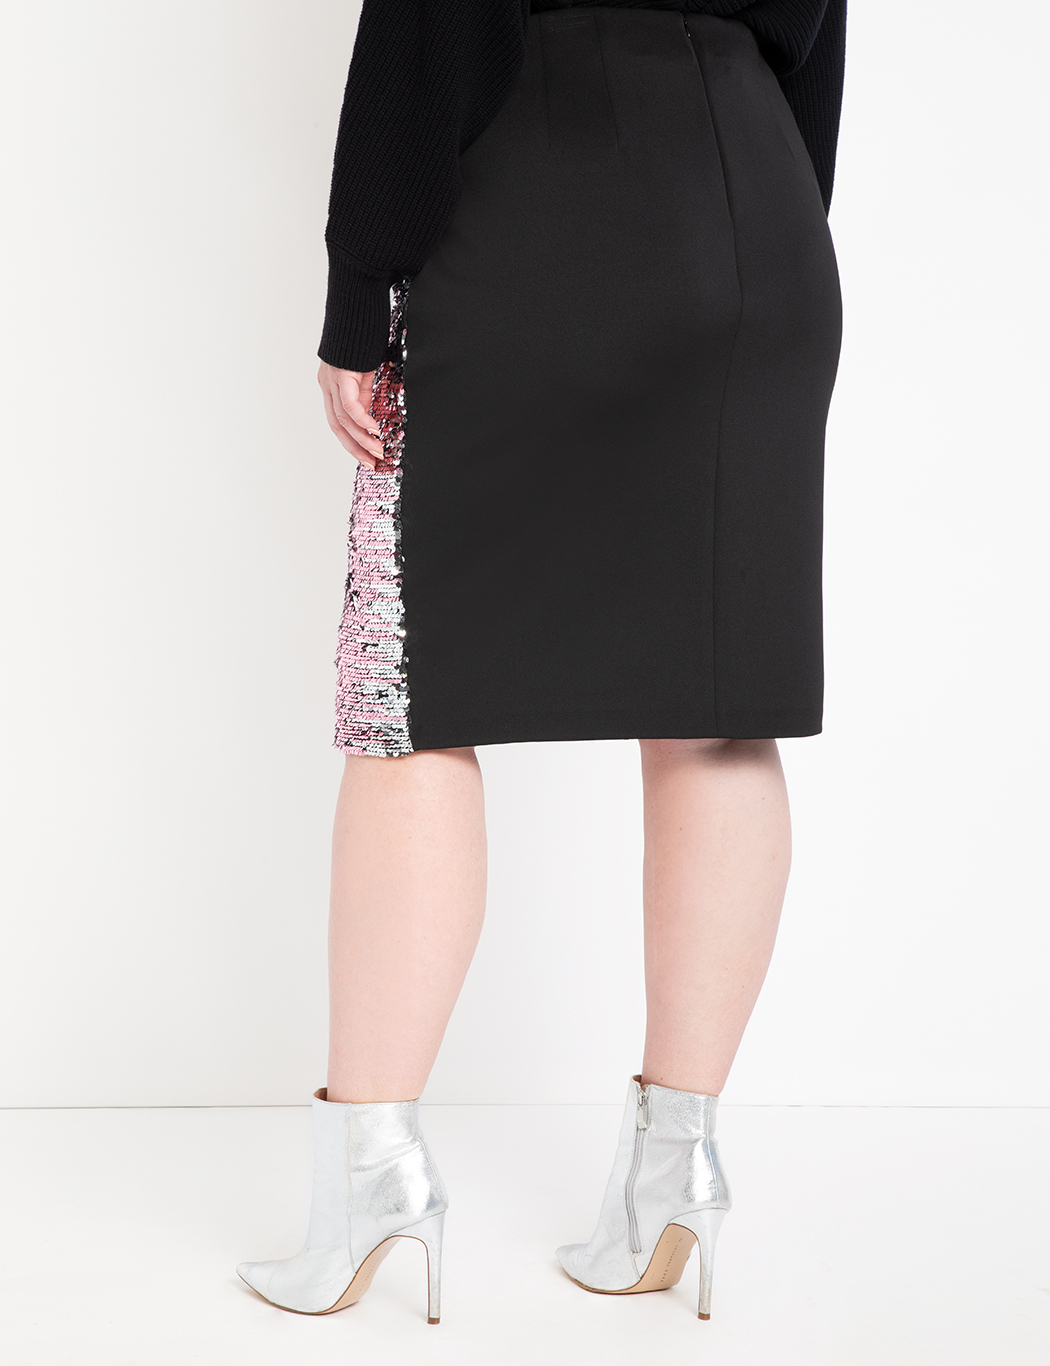 Studio Variegated Sequin Pencil Skirt